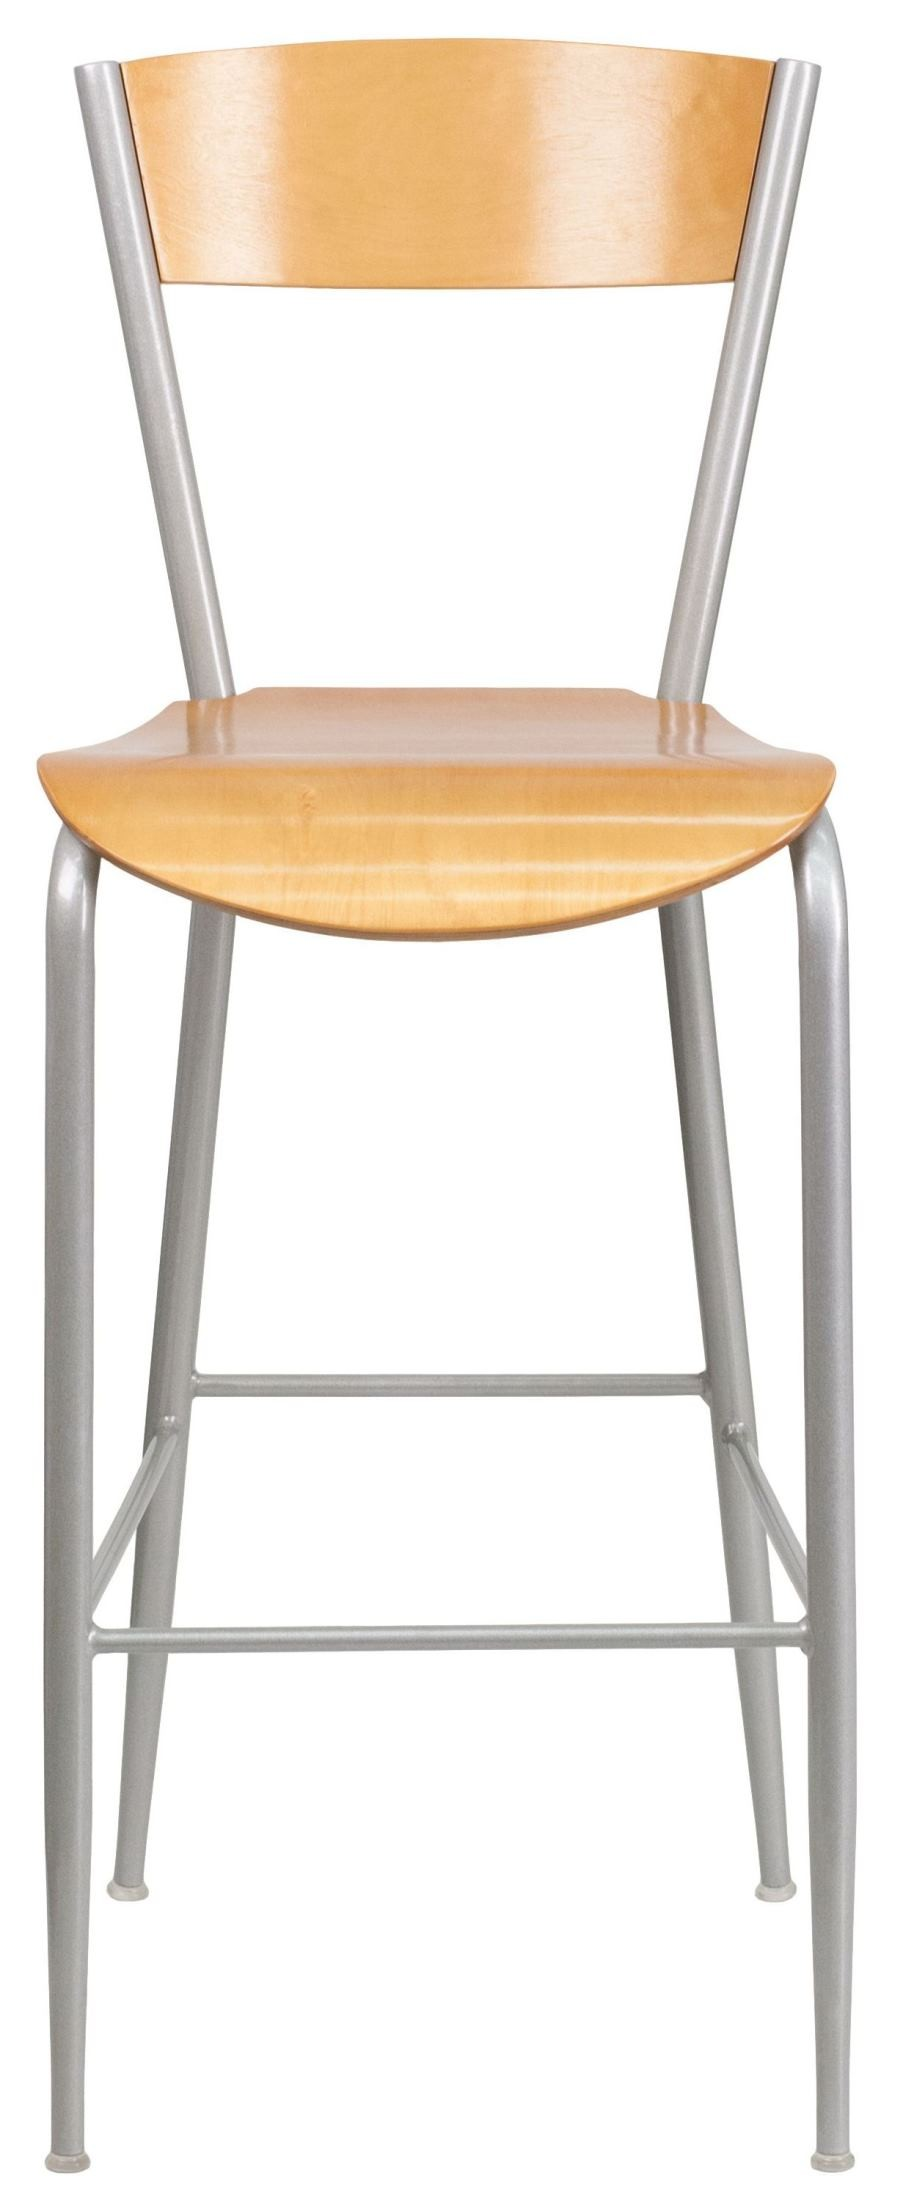 Invincible Series Natural Wood Back Metal Restaurant Barstool From Renegade Xu Dg 60218 Nat Gg